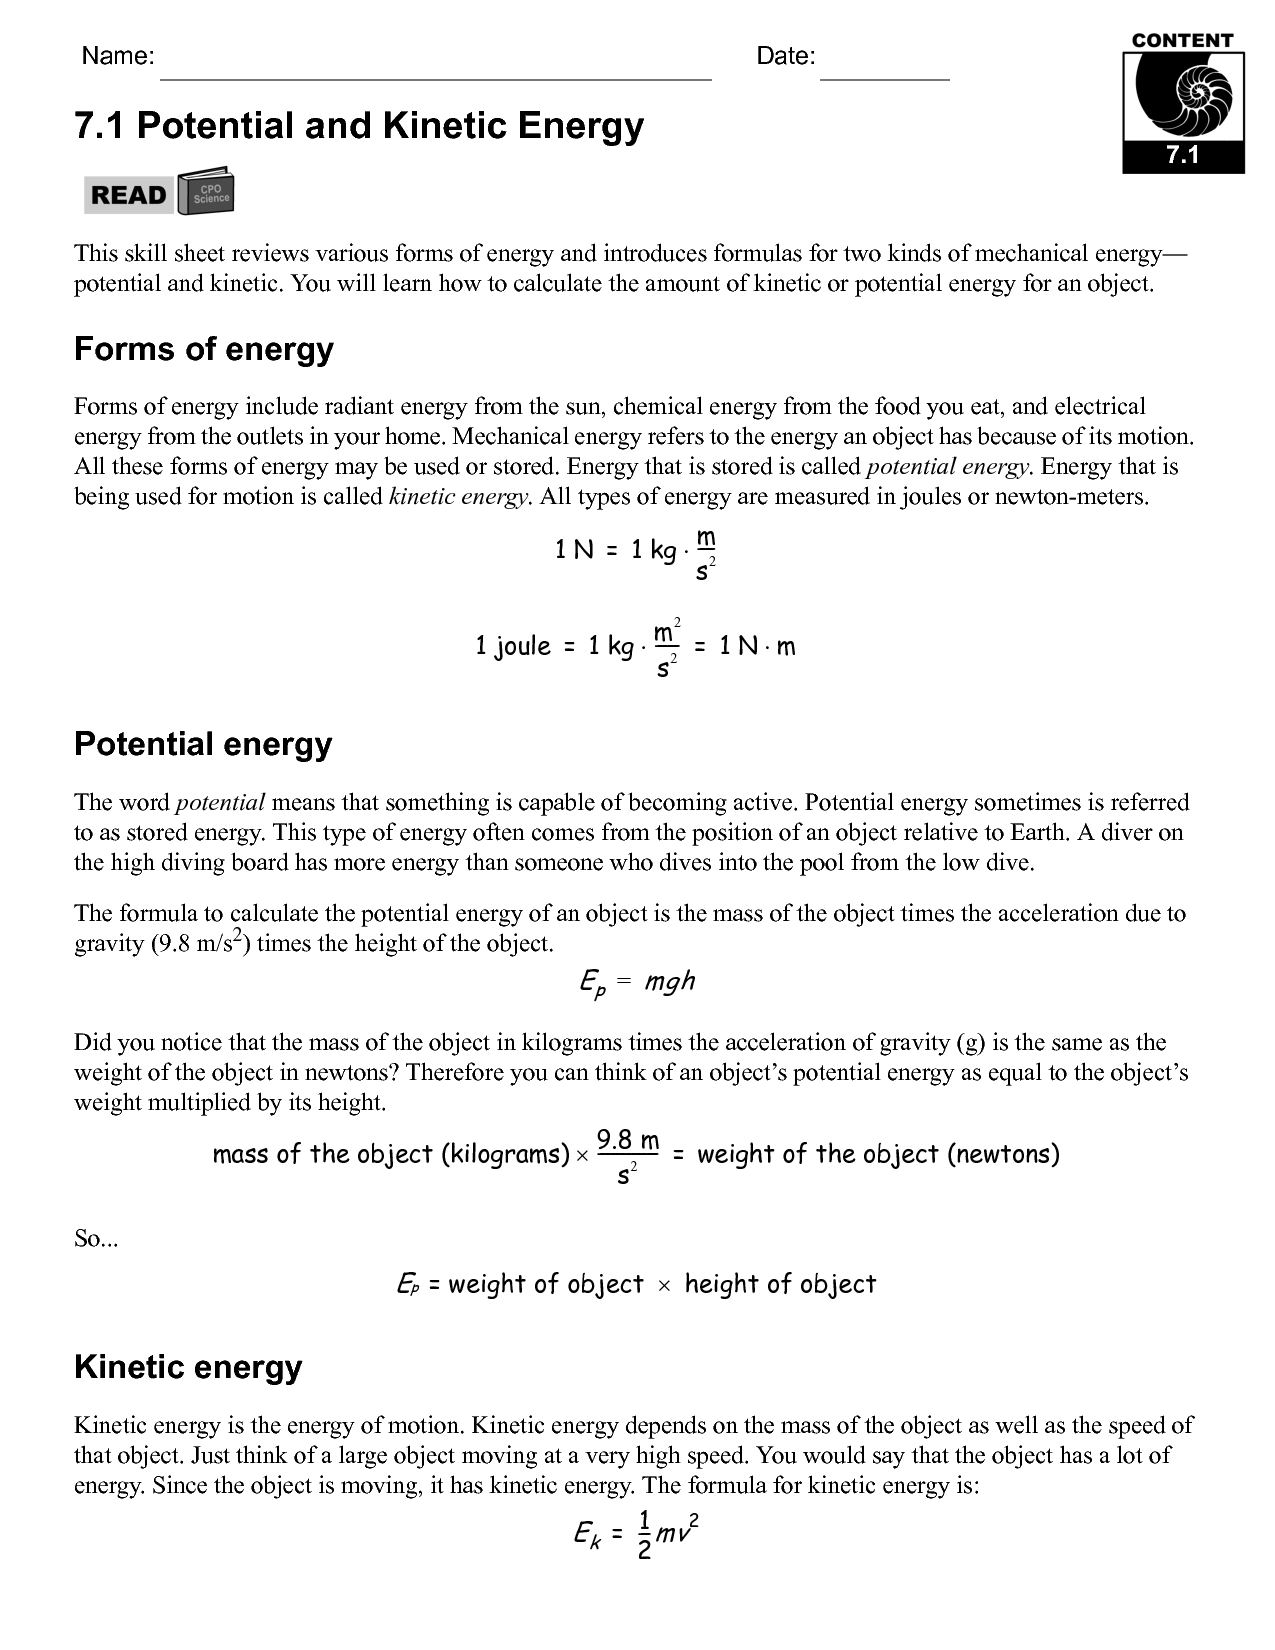 17 Best Images Of Potential Energy Practice Problems